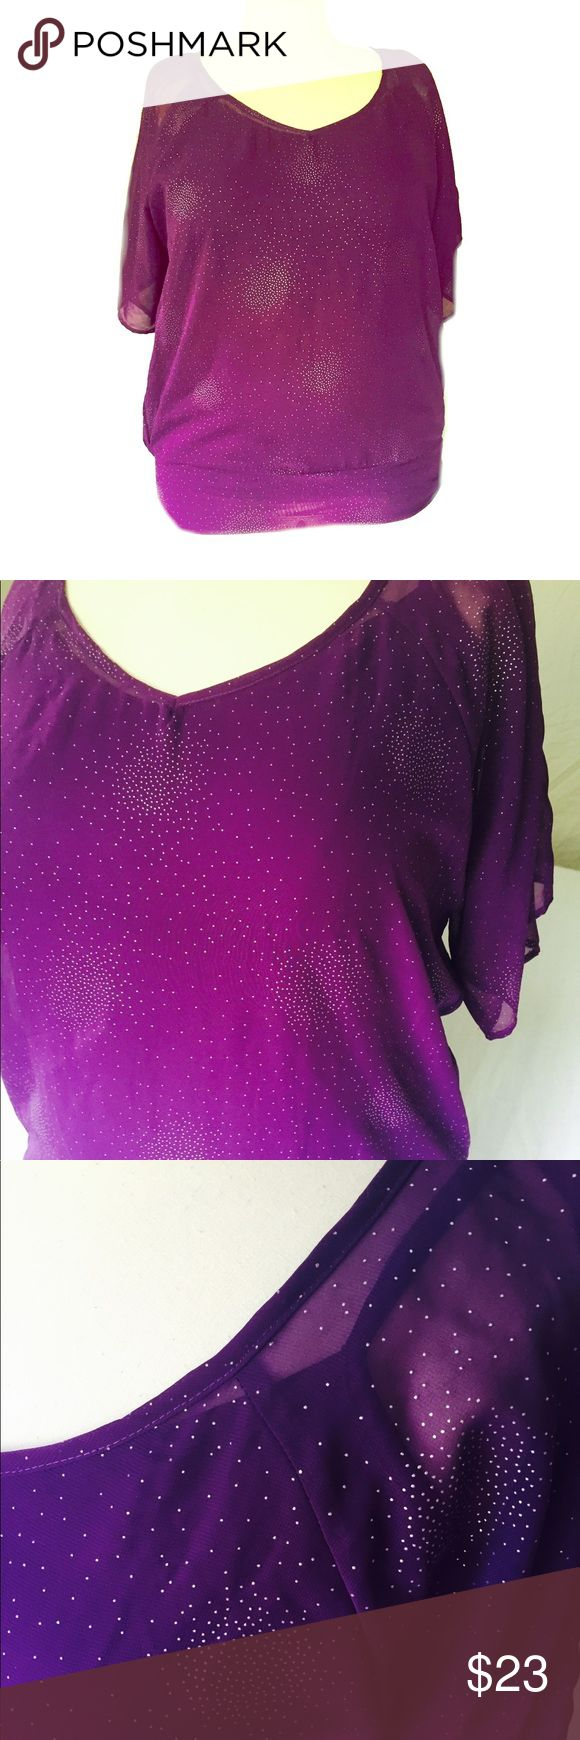 👚Maurices Sheer Plum Tulip Back Blouse👚 Sheer short sleeved purple blouse with sparkles. Built in purple cami, open tulip back, banded bottom. 😍 Maurices Tops Blouses